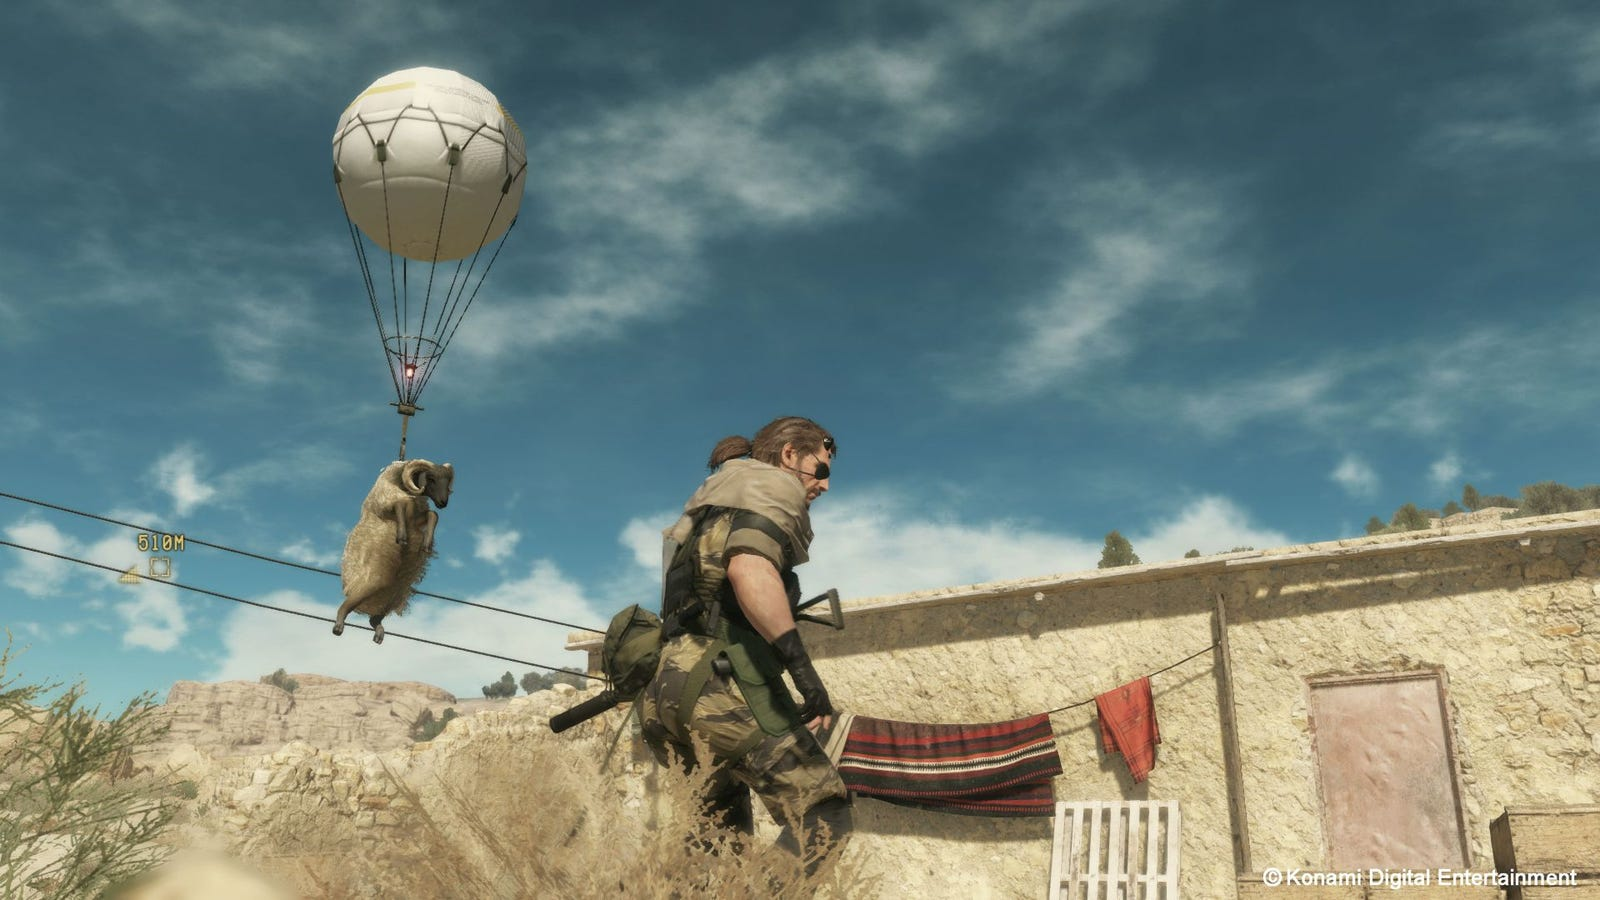 Metal Gear Solid V Is Way More Fun When You Stop Caring